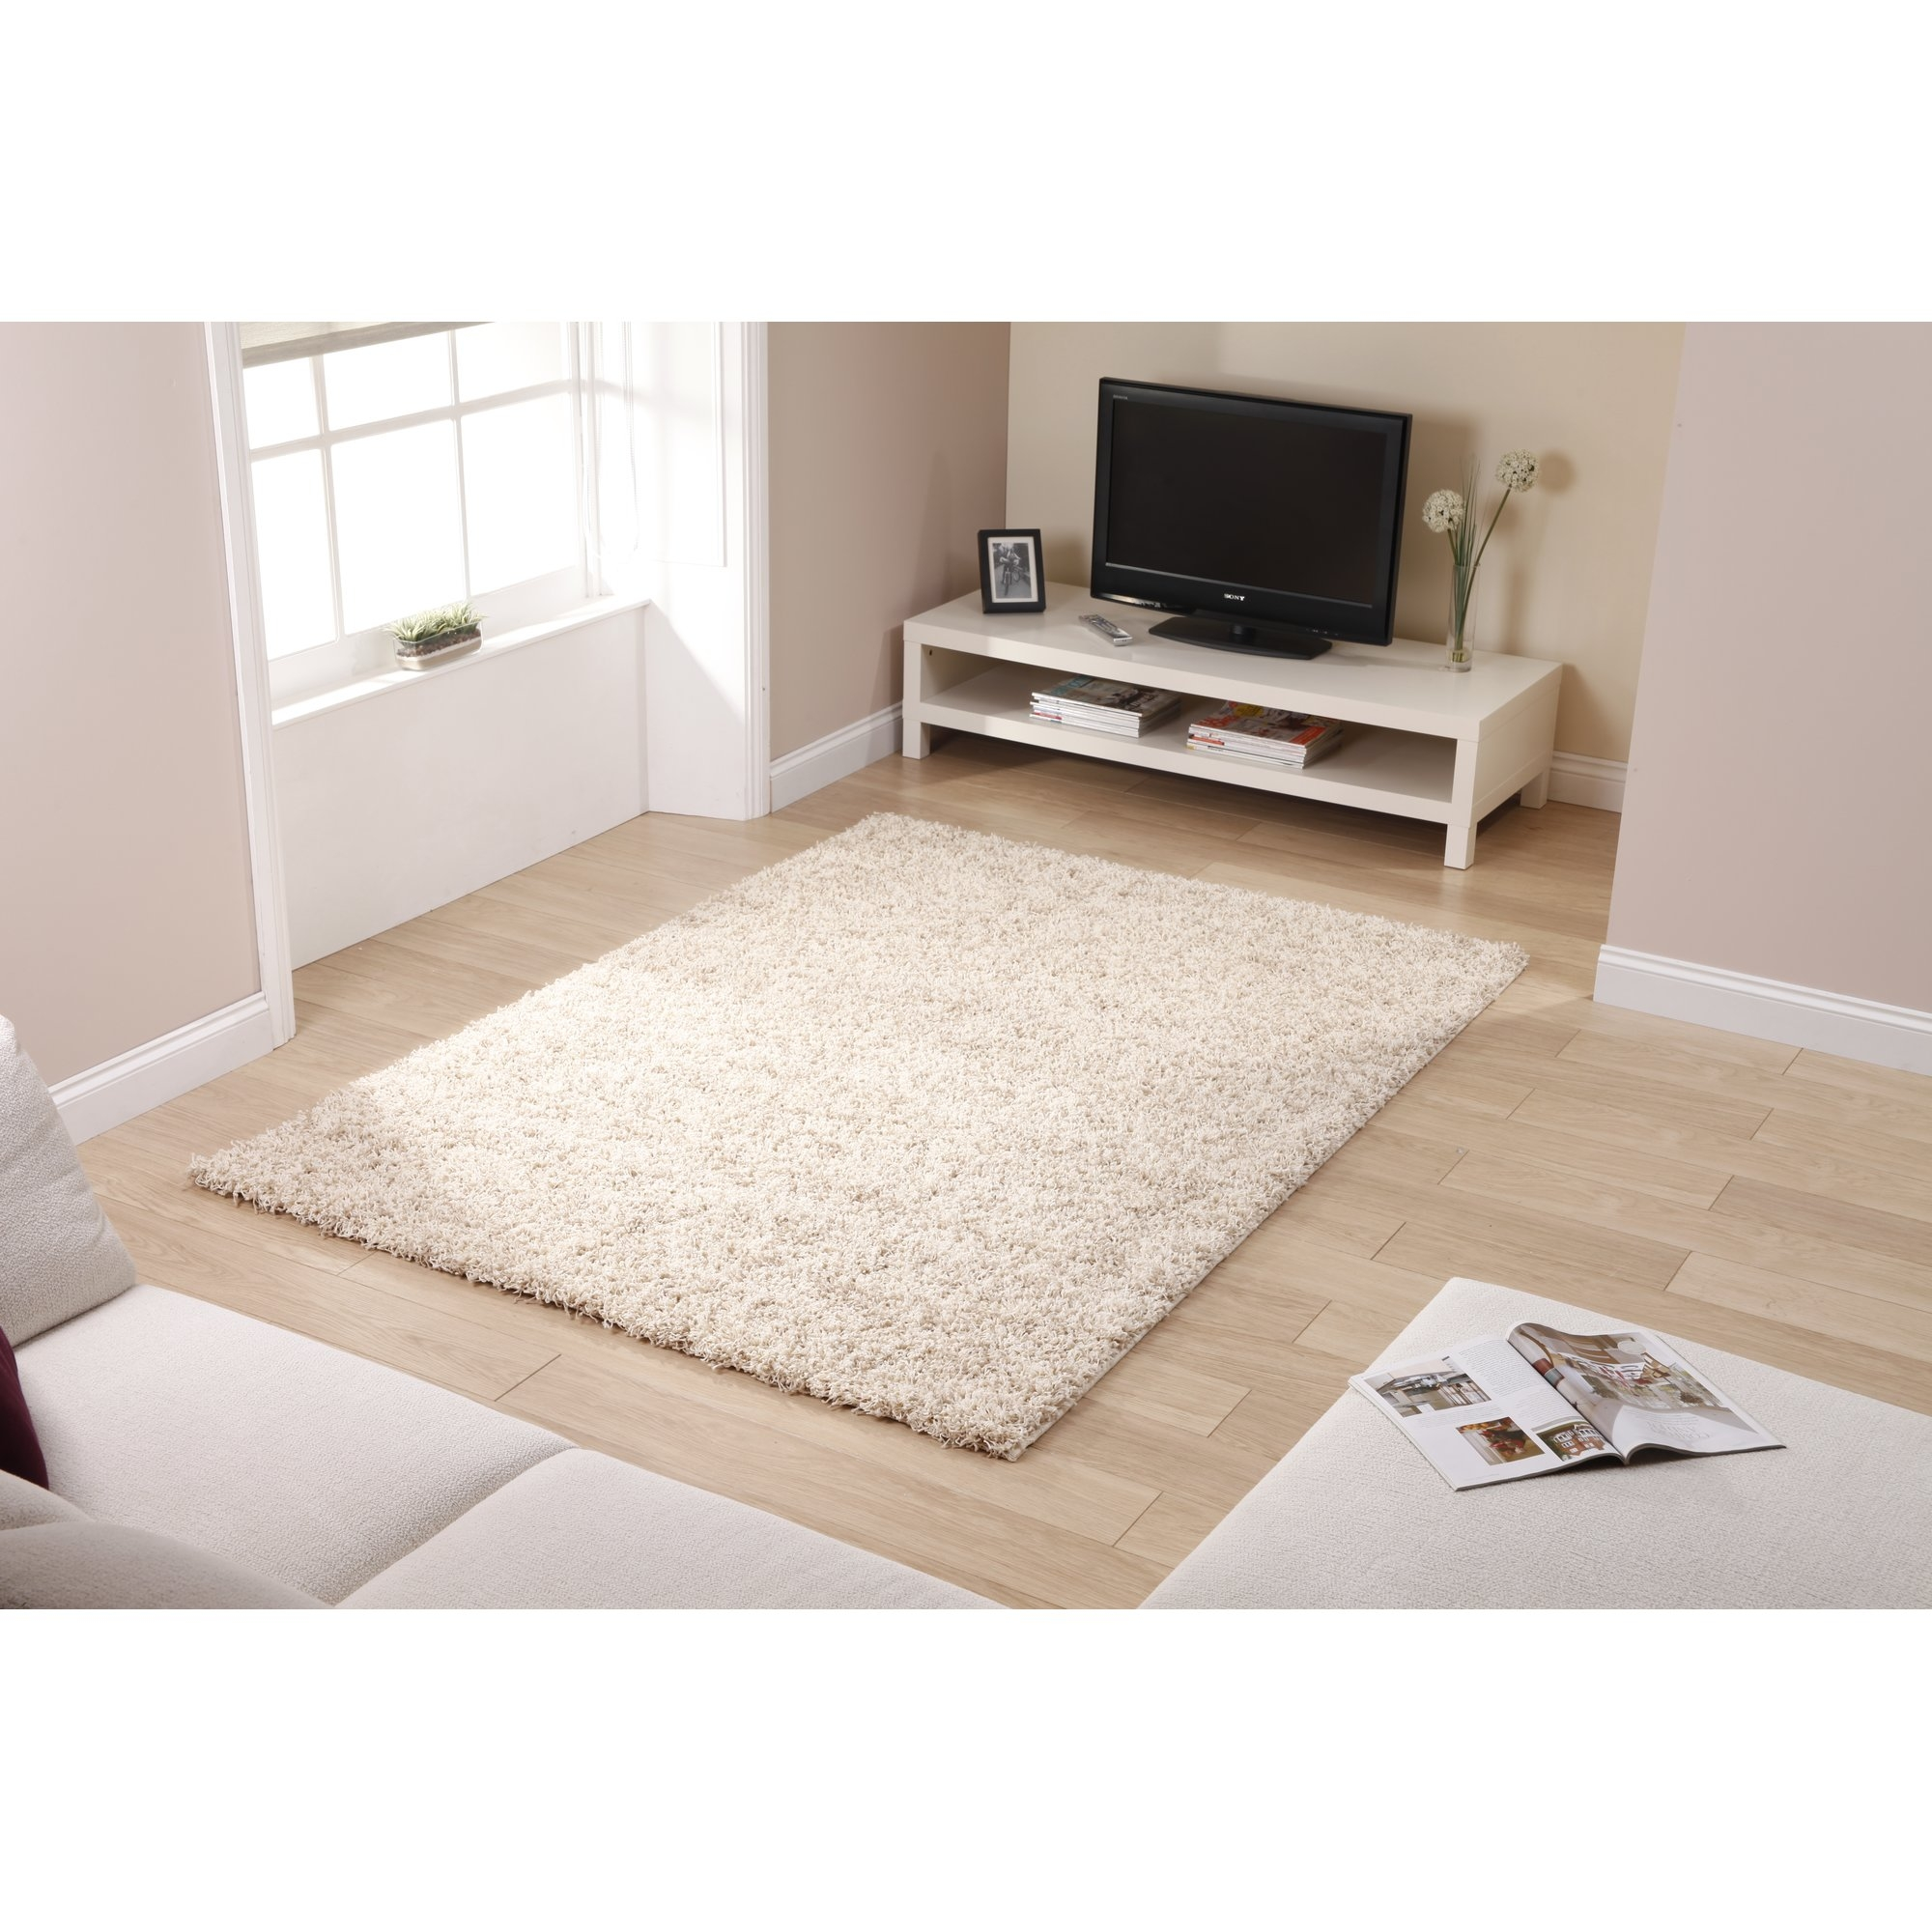 Cream Rugs Uk Home Decors Collection With Cream Rugs (Image 8 of 15)